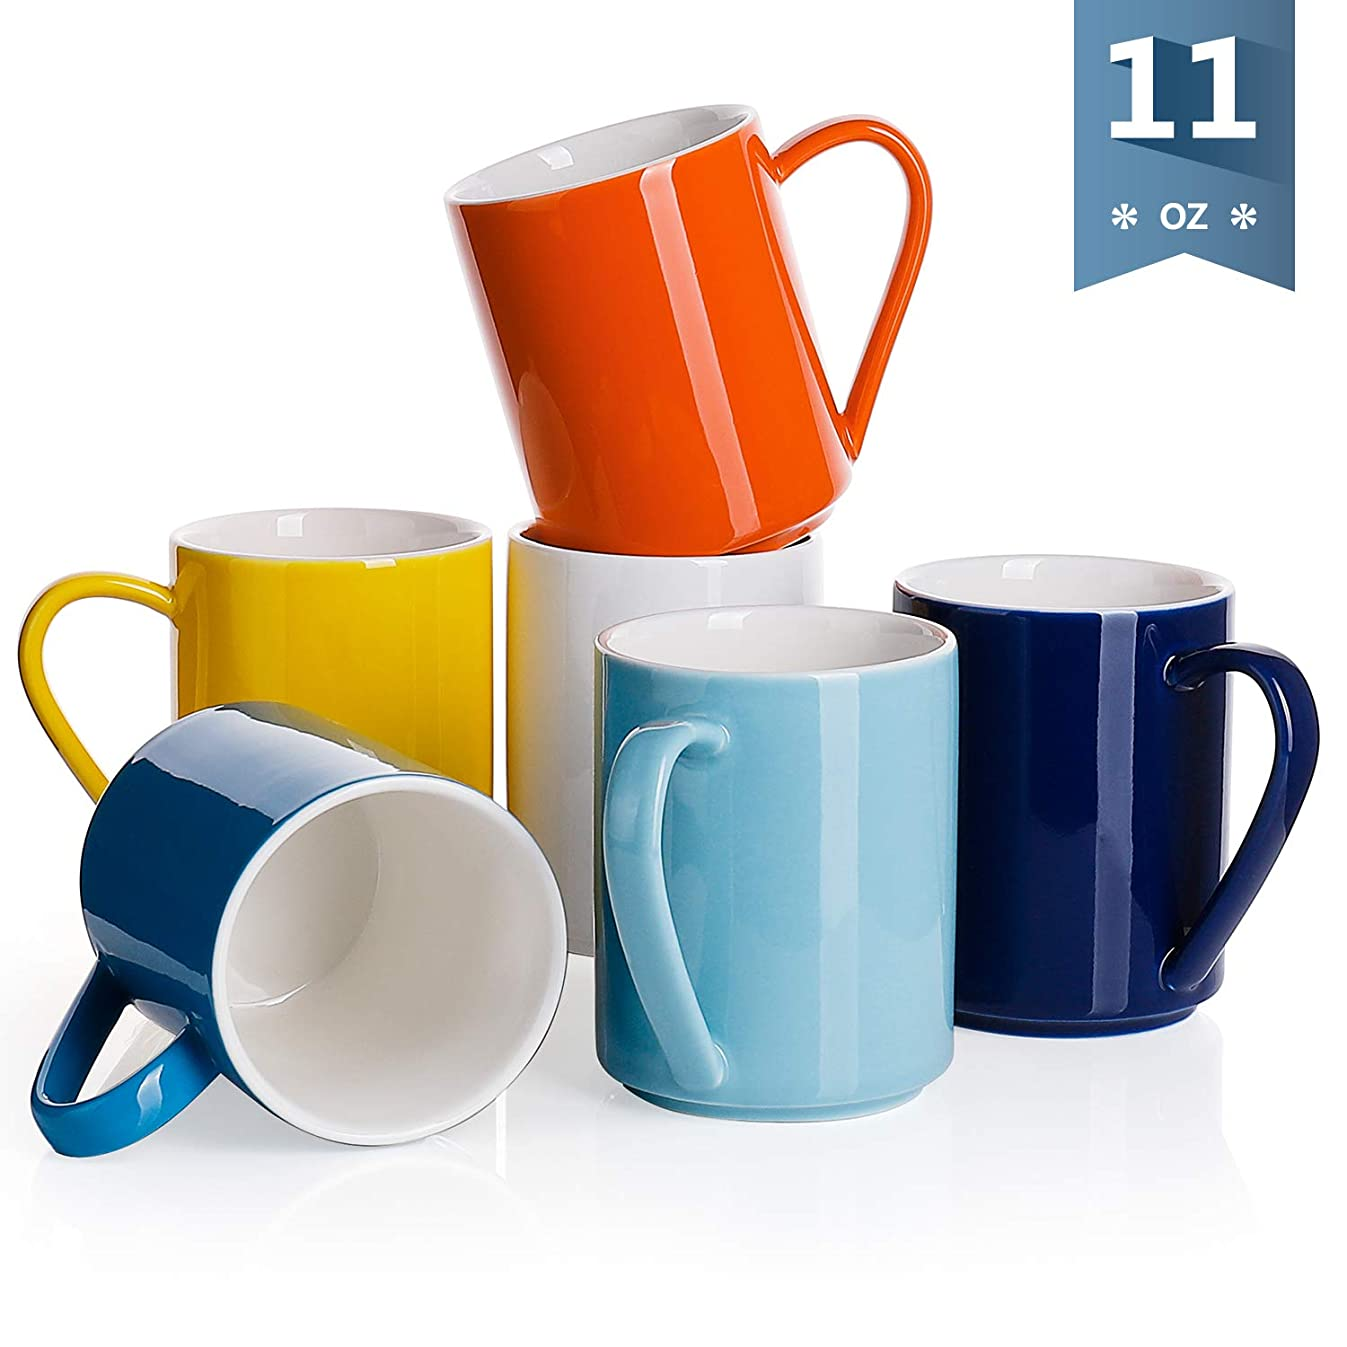 Sweese 6213 Porcelain Coffee Mug Set - 11 Ounce for Coffee, Tea, Cocoa and Mulled Drinks - Set of 6, Hot Assorted Colors